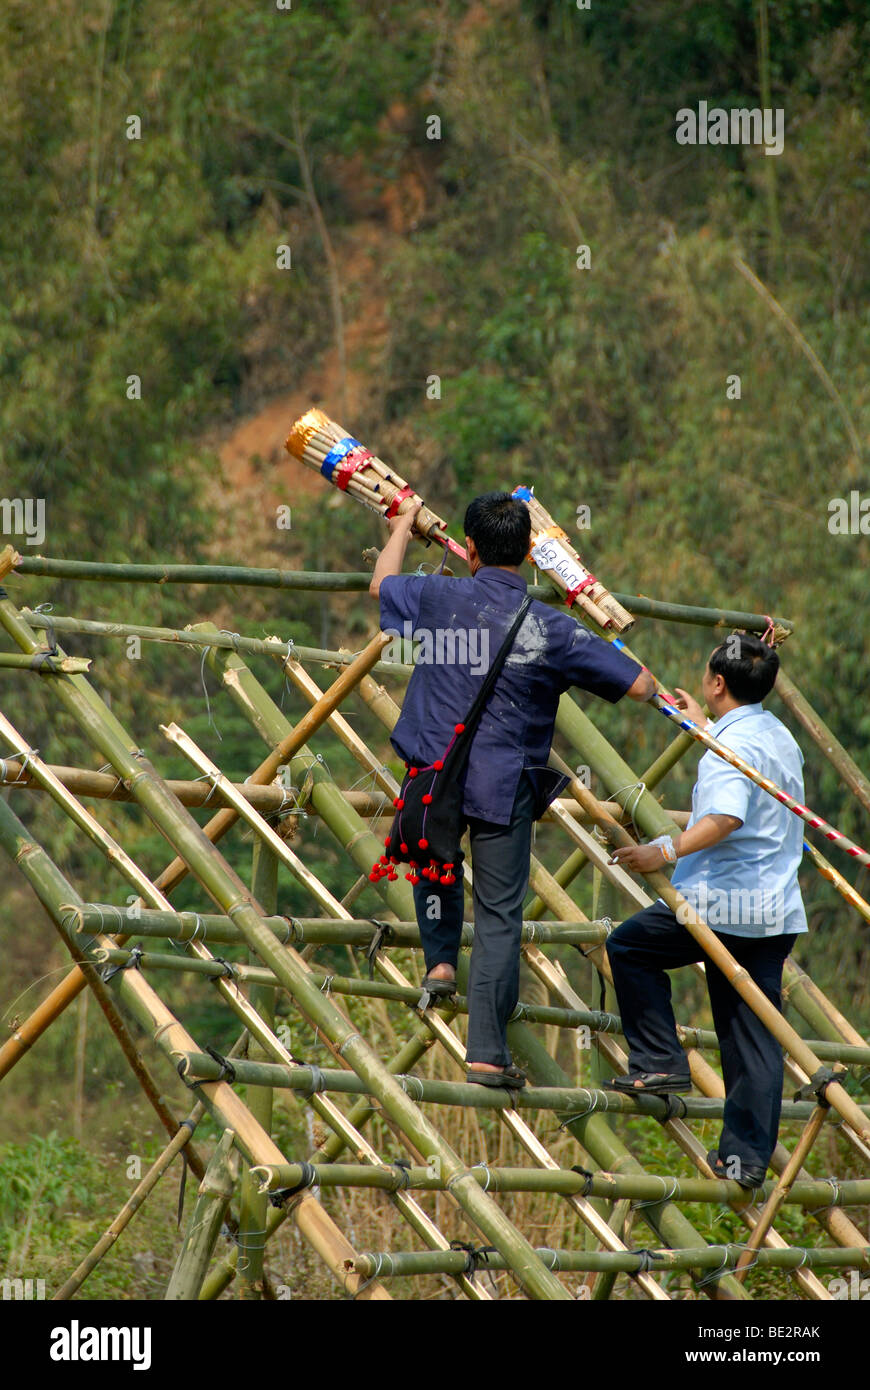 Men laying fireworks on a launching pad, Pi Mai, Lao New Year festival, city of Phongsali, Phongsali Province, Laos, - Stock Image